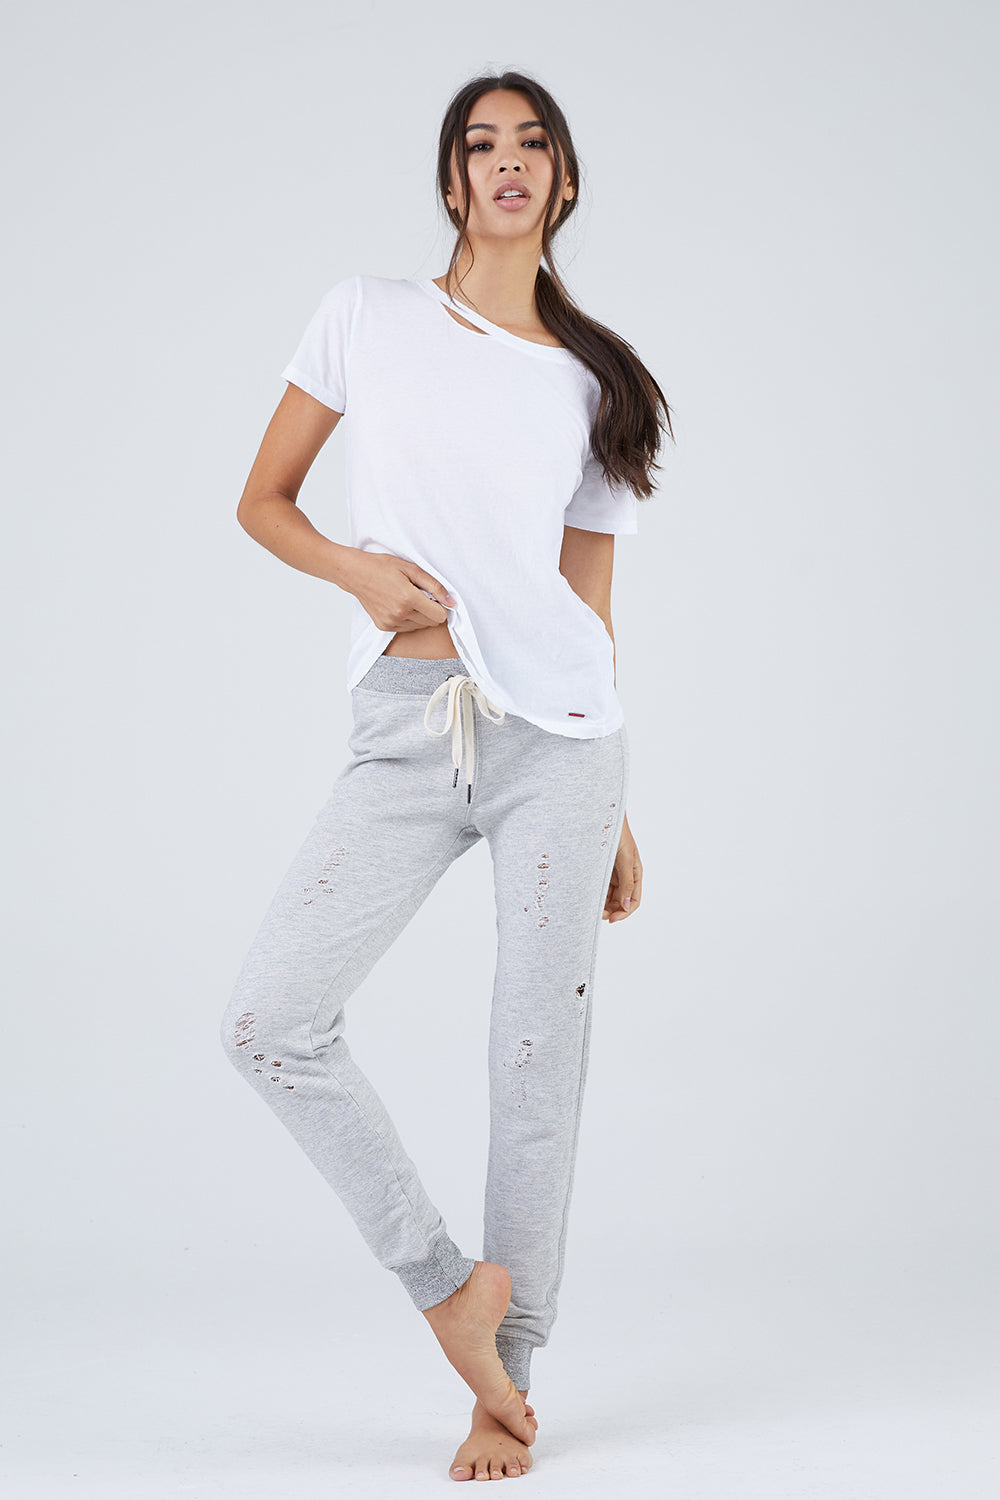 N:PHILANTHROPY Nikki Decon Pants - Heather Grey Pants | Heather Grey| N:PHILANTHROPY Nikki Decon Pants - Heather Grey. Features:  Deconstructed sweatpants Thick waistband Adjustable waist tie Cult classic Back pocket Front View